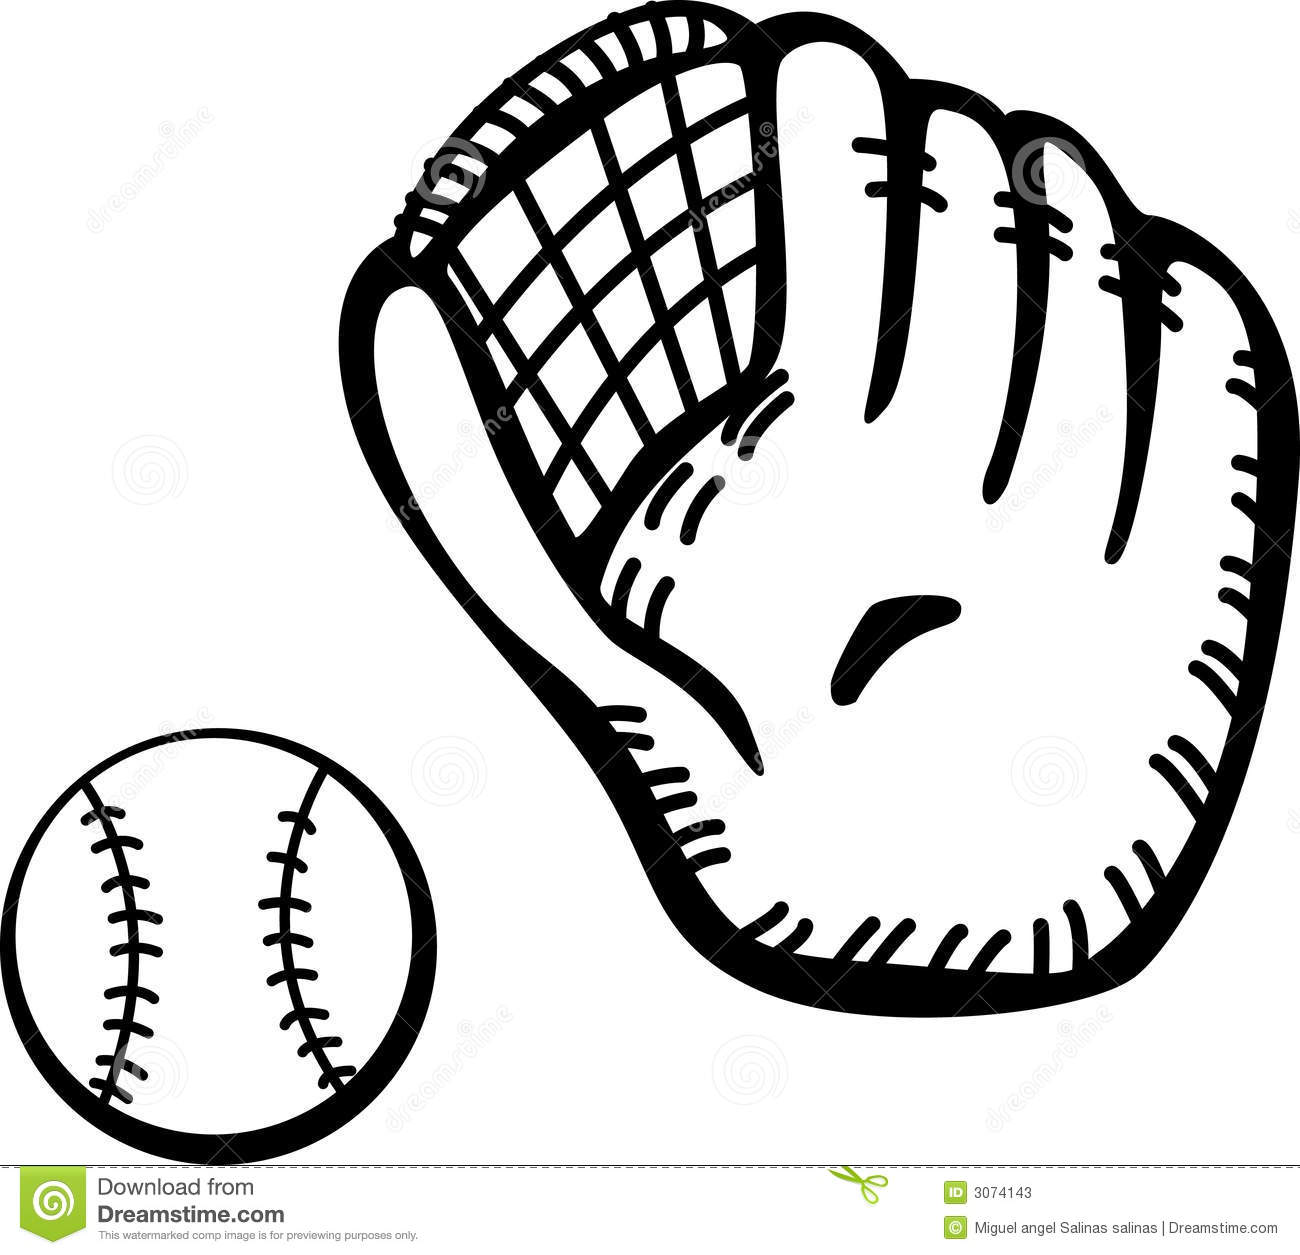 Arm in softball glove clipart clip art black and white stock Collection of Glove clipart | Free download best Glove clipart on ... clip art black and white stock